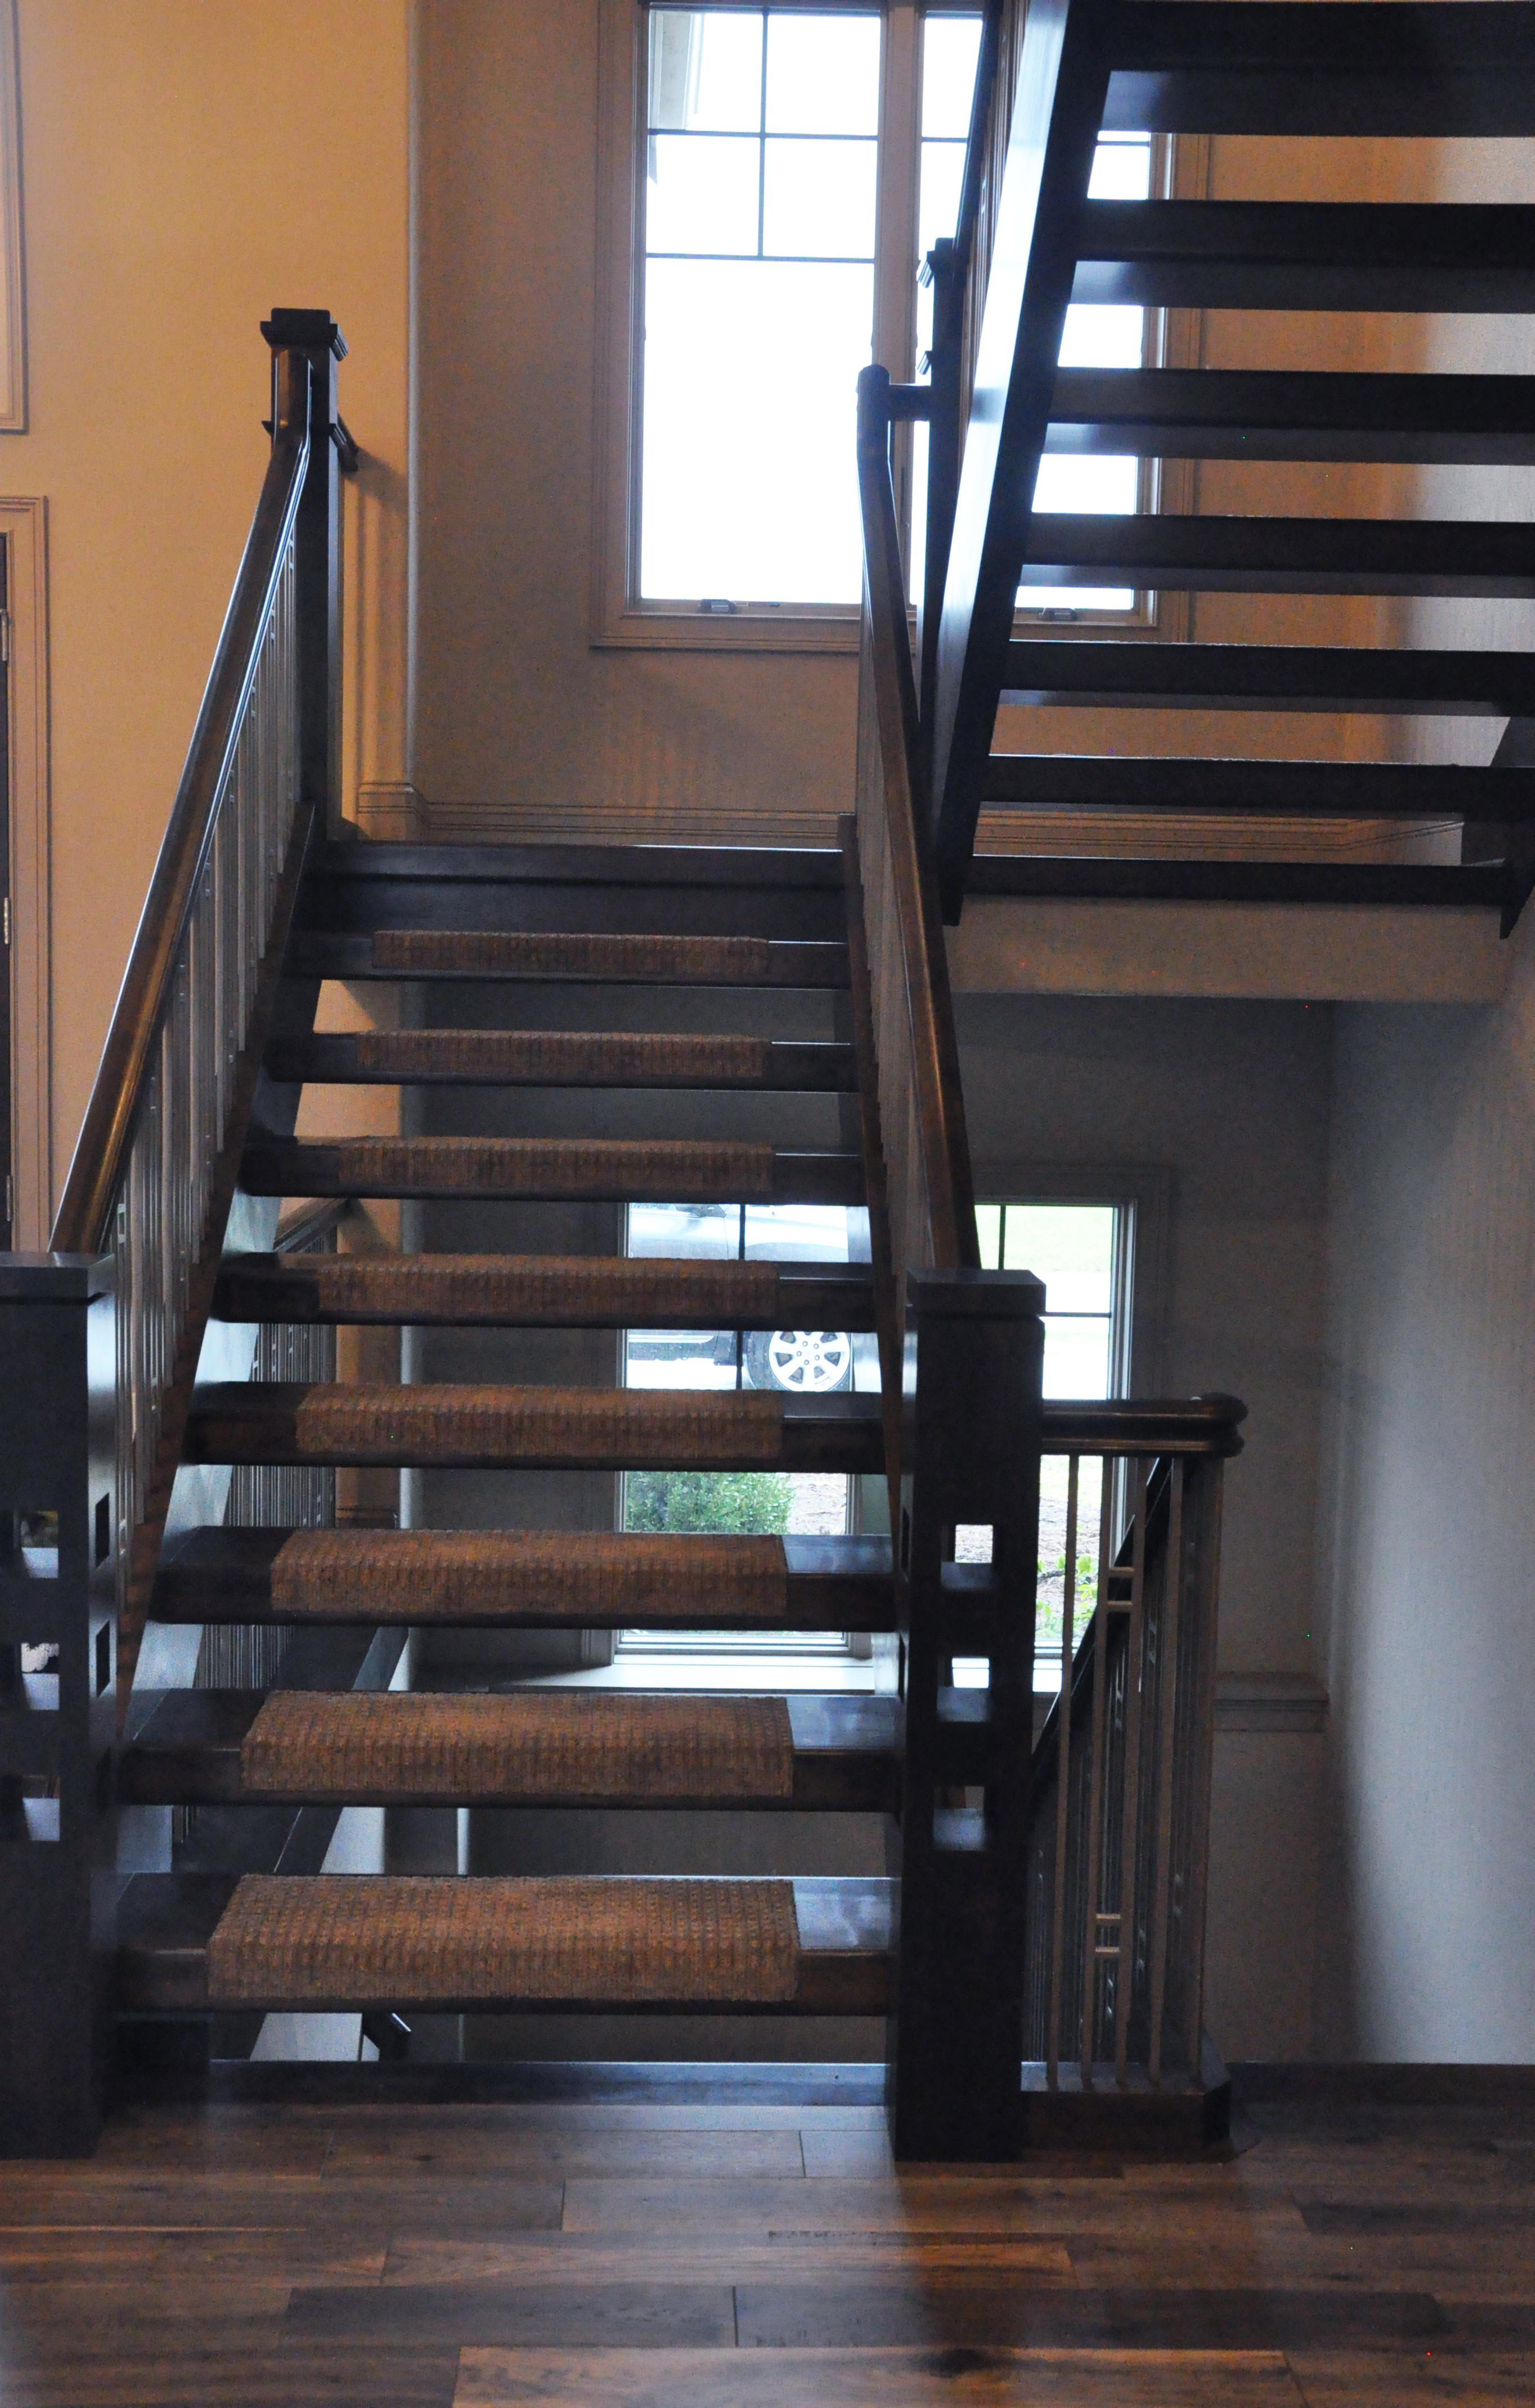 hardwood floor restoration milwaukee of hardwood stair treads staircasing installation milwaukee wi with click image to enlarge